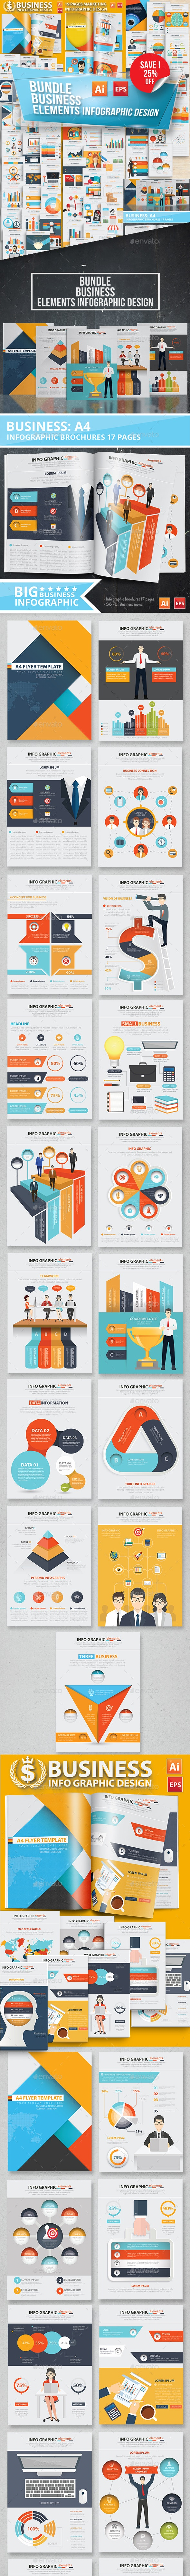 Bundle Business Infographic Elements Design - Infographics